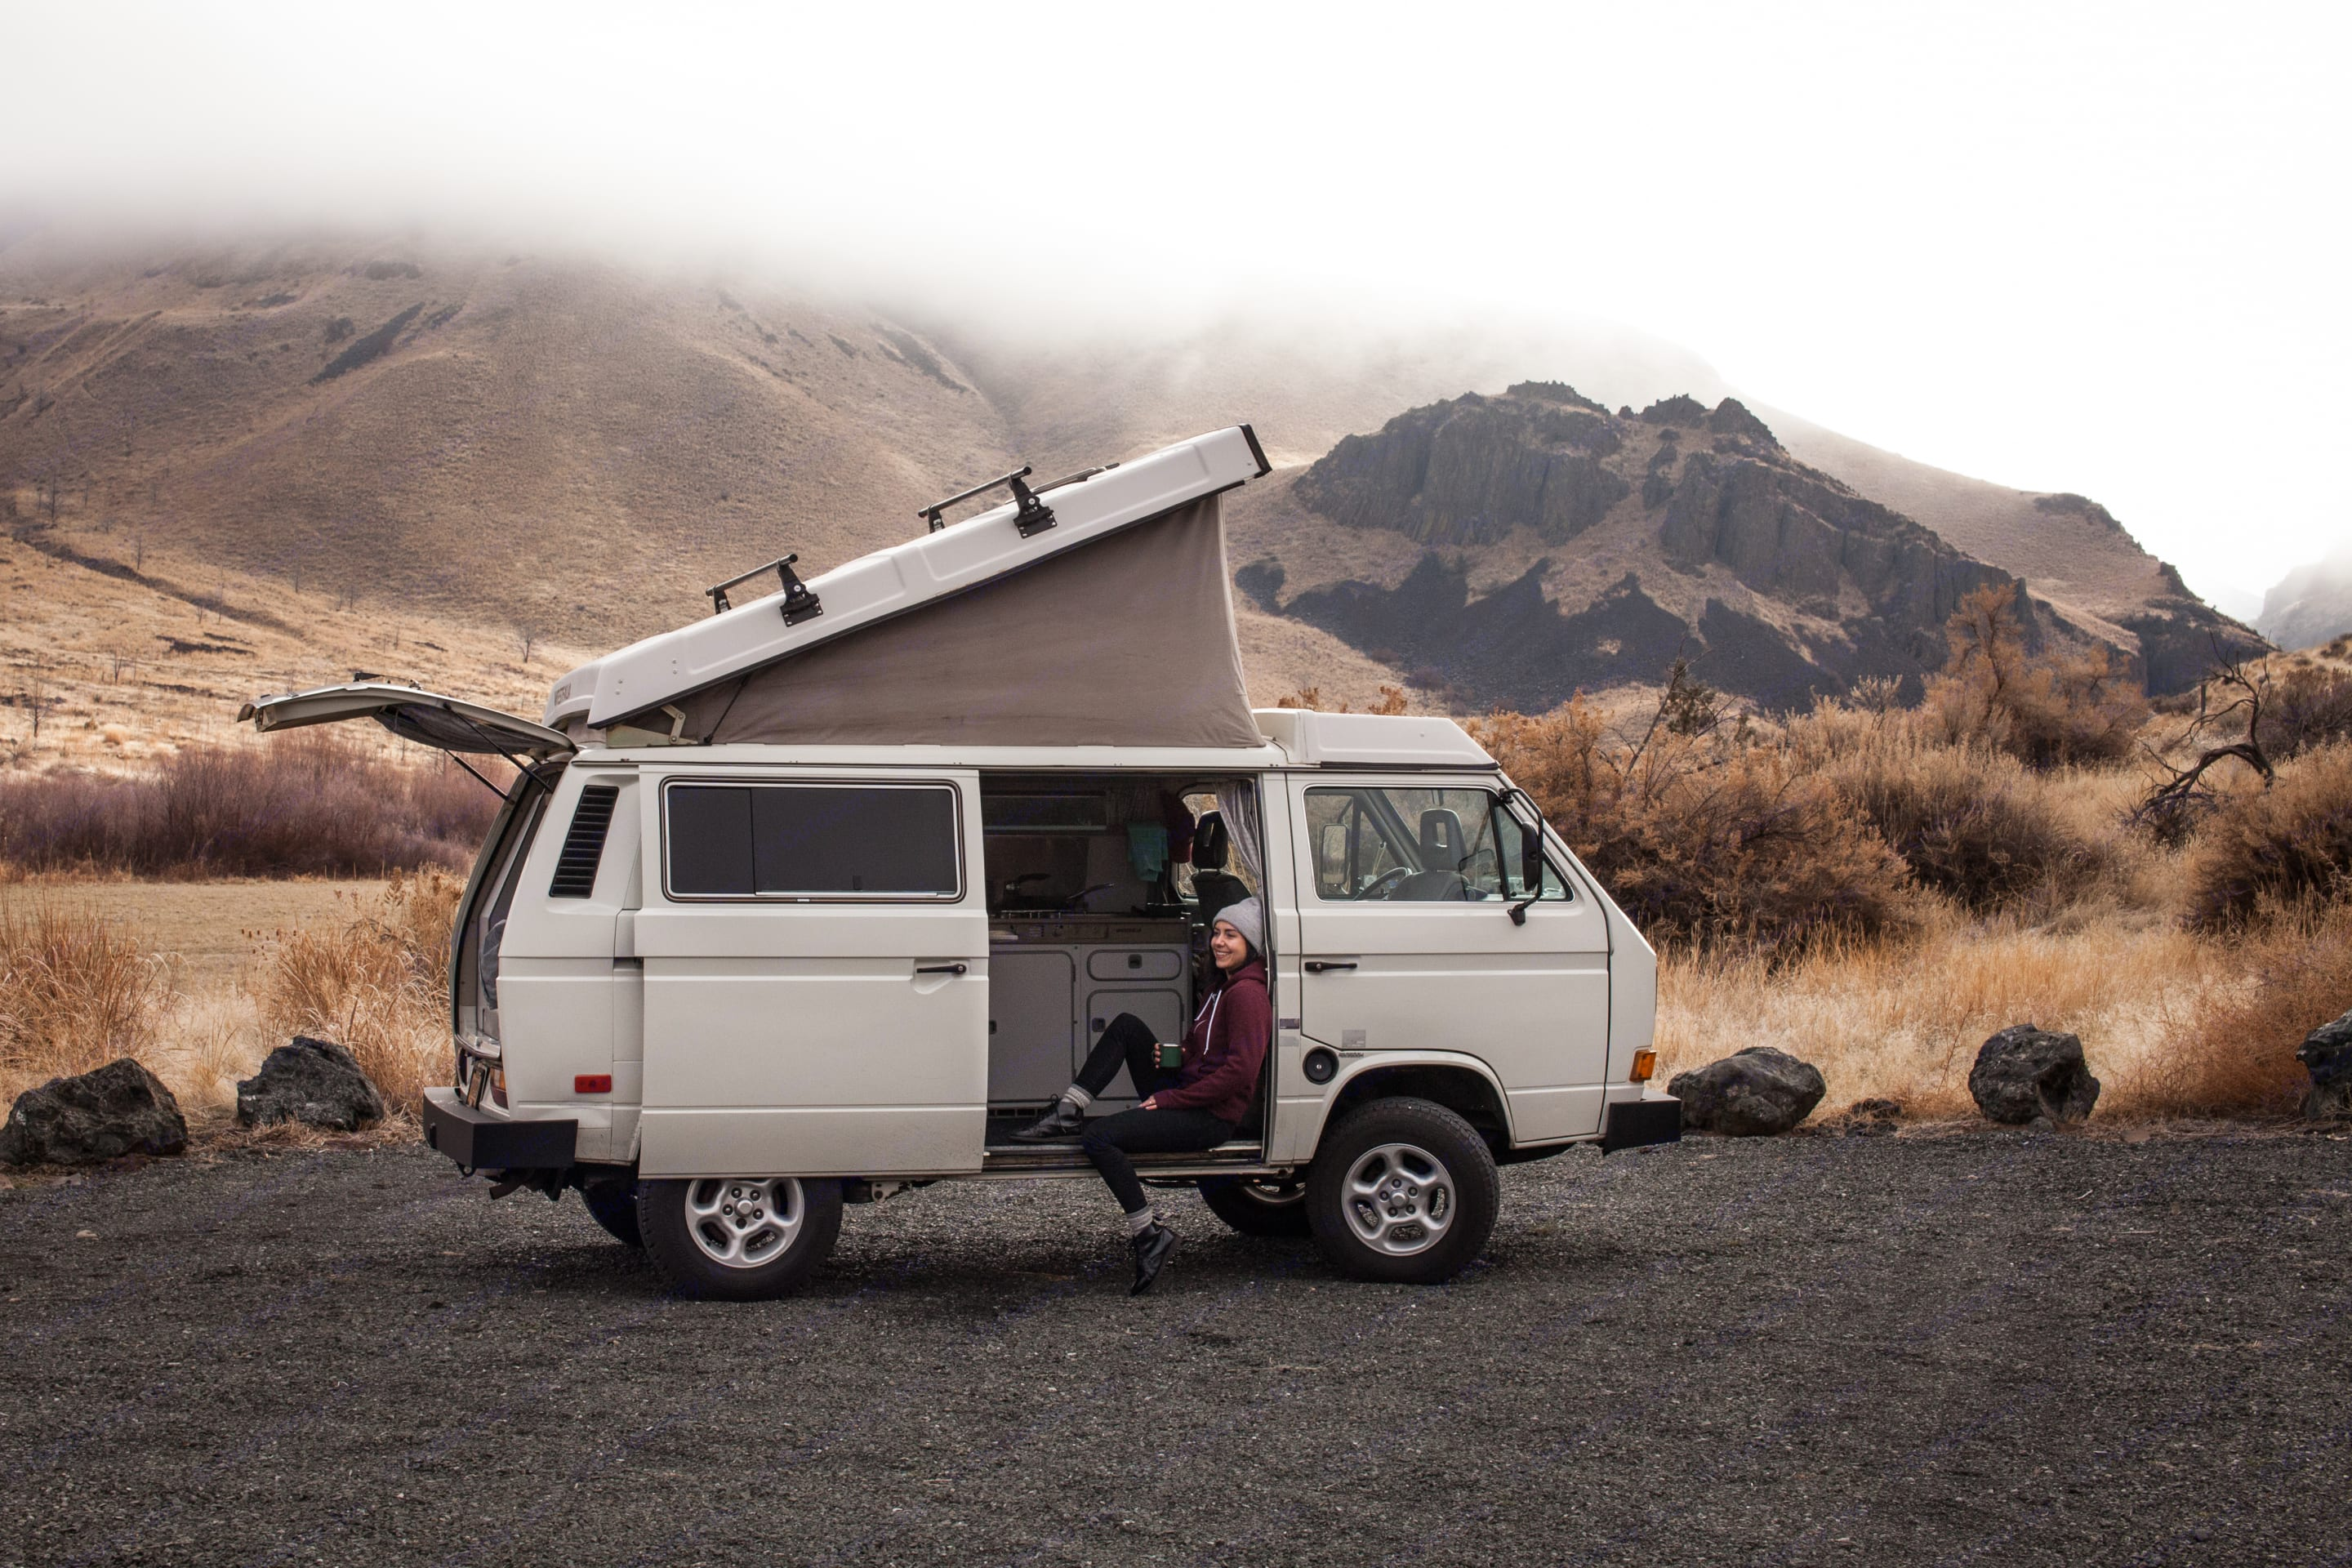 There's no van with such romance and classic style like Tumalo.. Volkswagen Vanagon Camper 1987